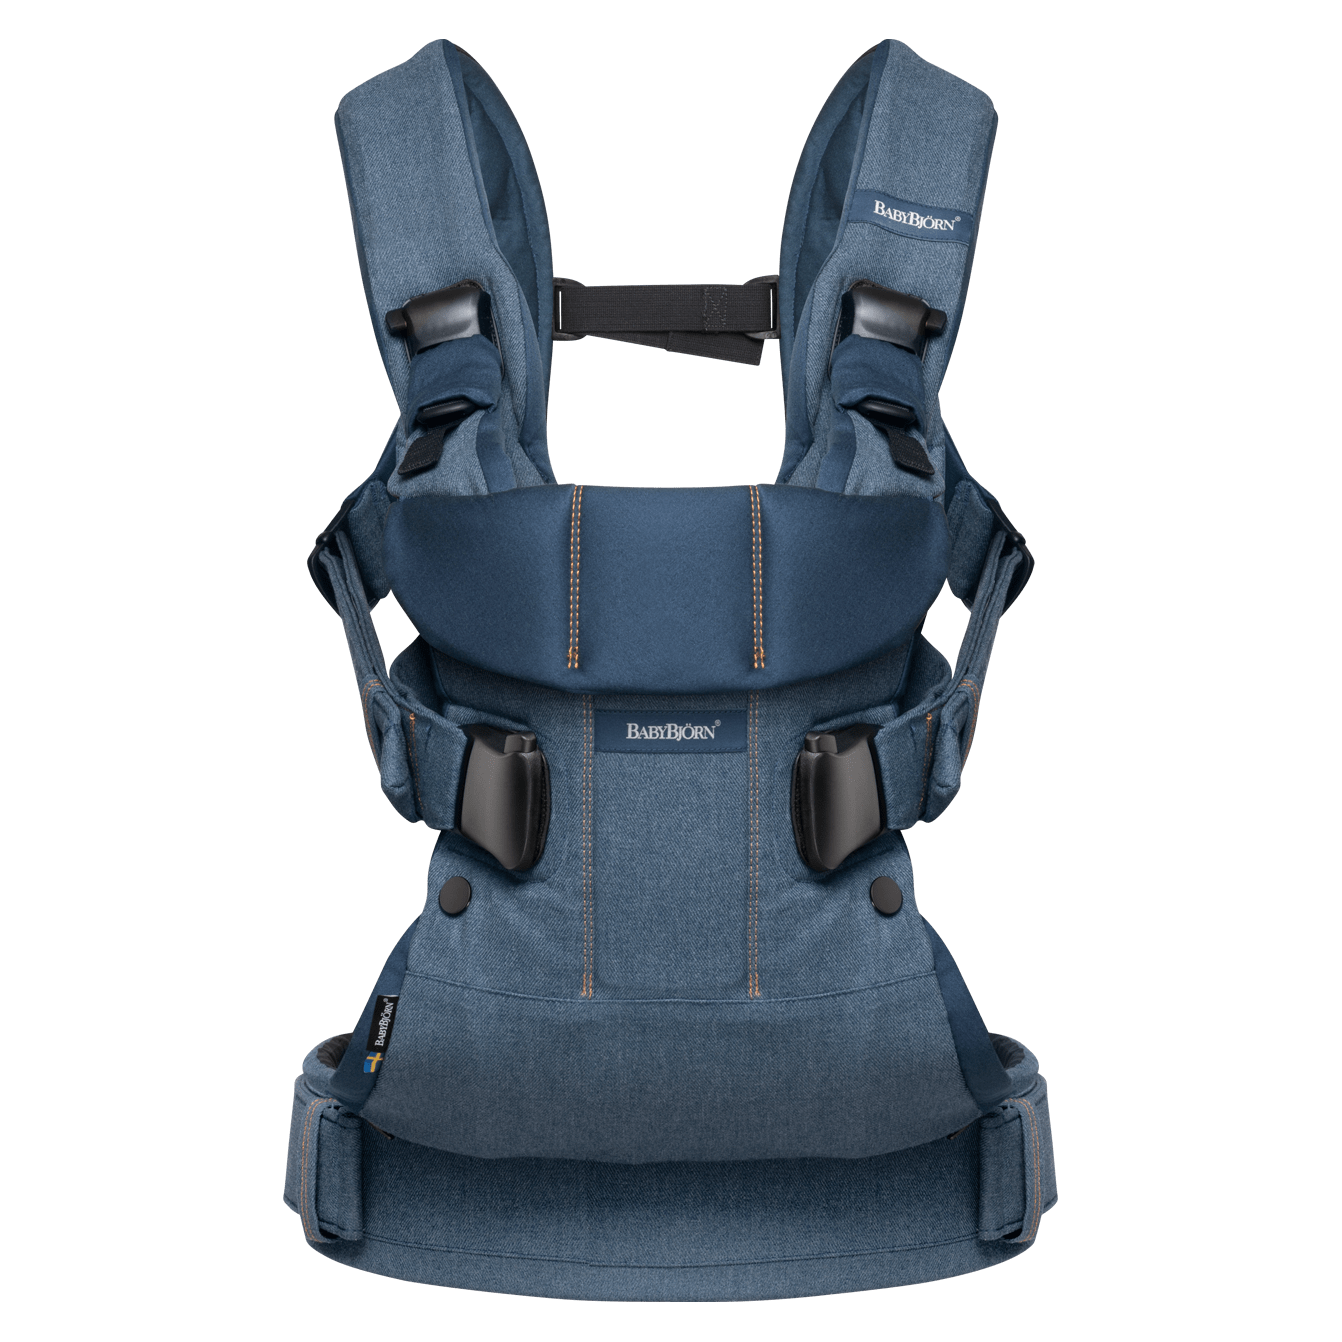 Baby Carrier One – an ergonomic best seller